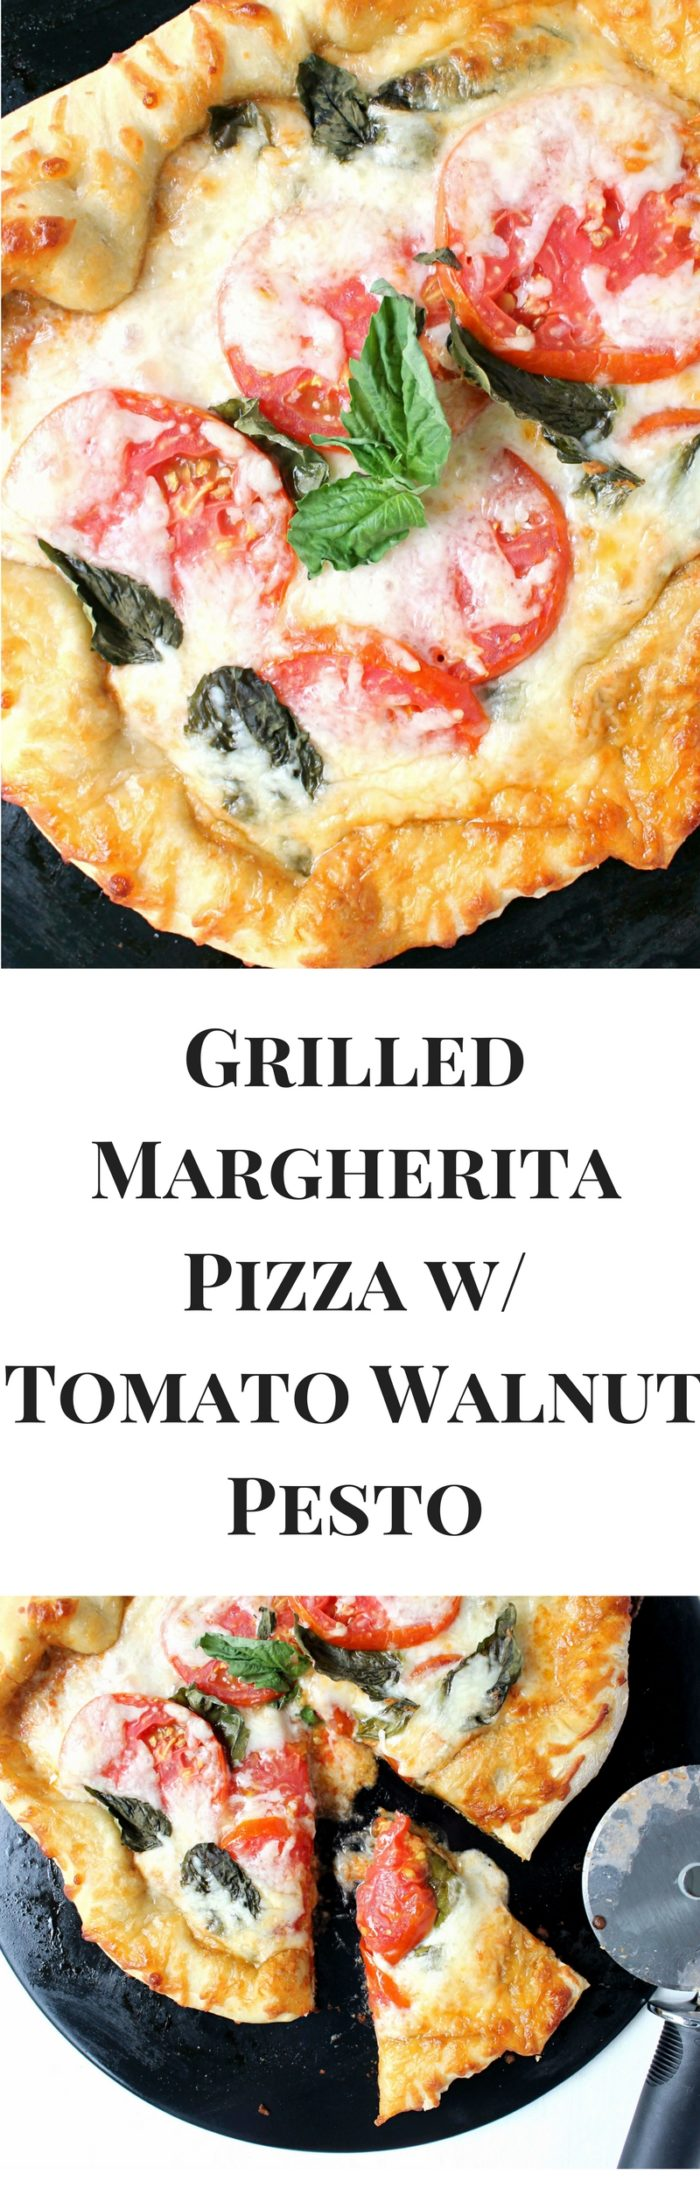 Grilled Margherita Pizza w/ Tomato Walnut Pesto